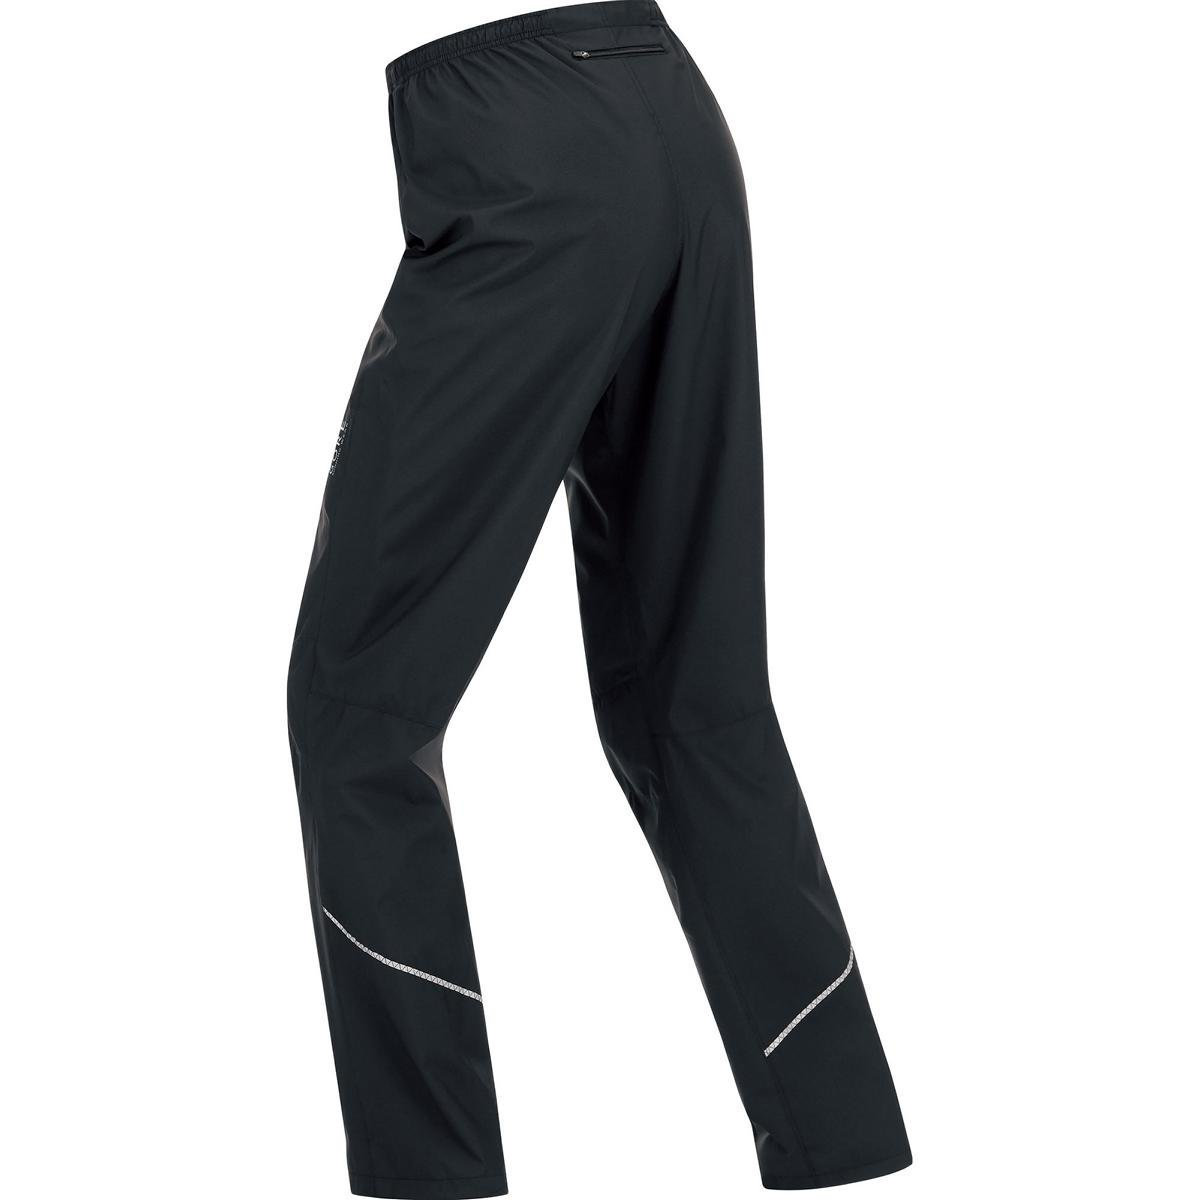 Gore Running Wear Men's Essential Active Shell Pant, Black, X-Large by Gore Running Wear (Image #2)